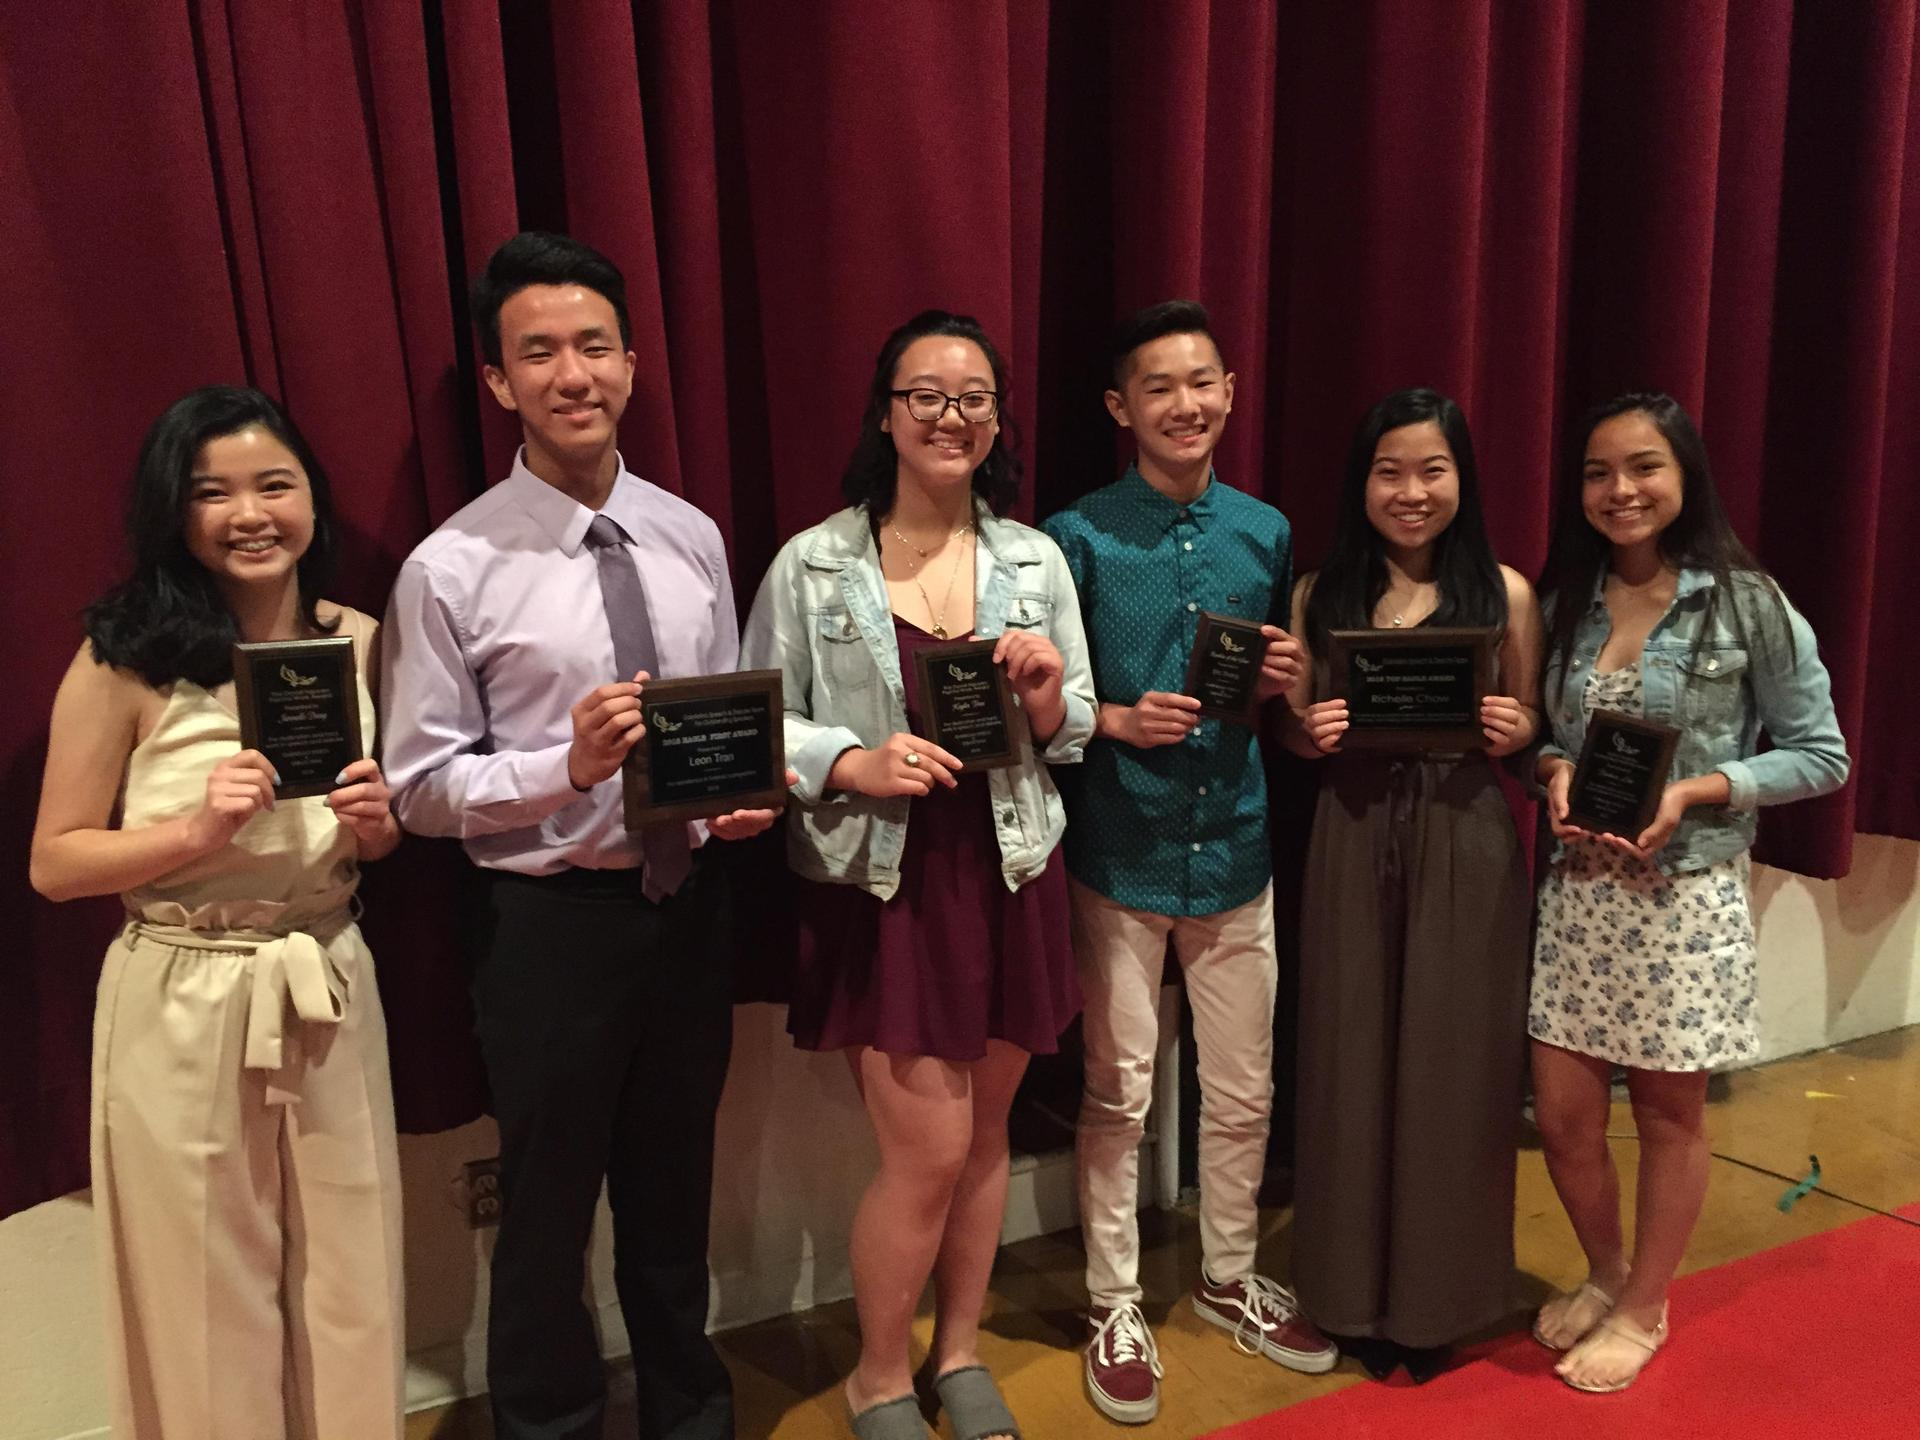 ddfd916a1e9c Prior School Year News – Speech and Debate – Gabrielino High School